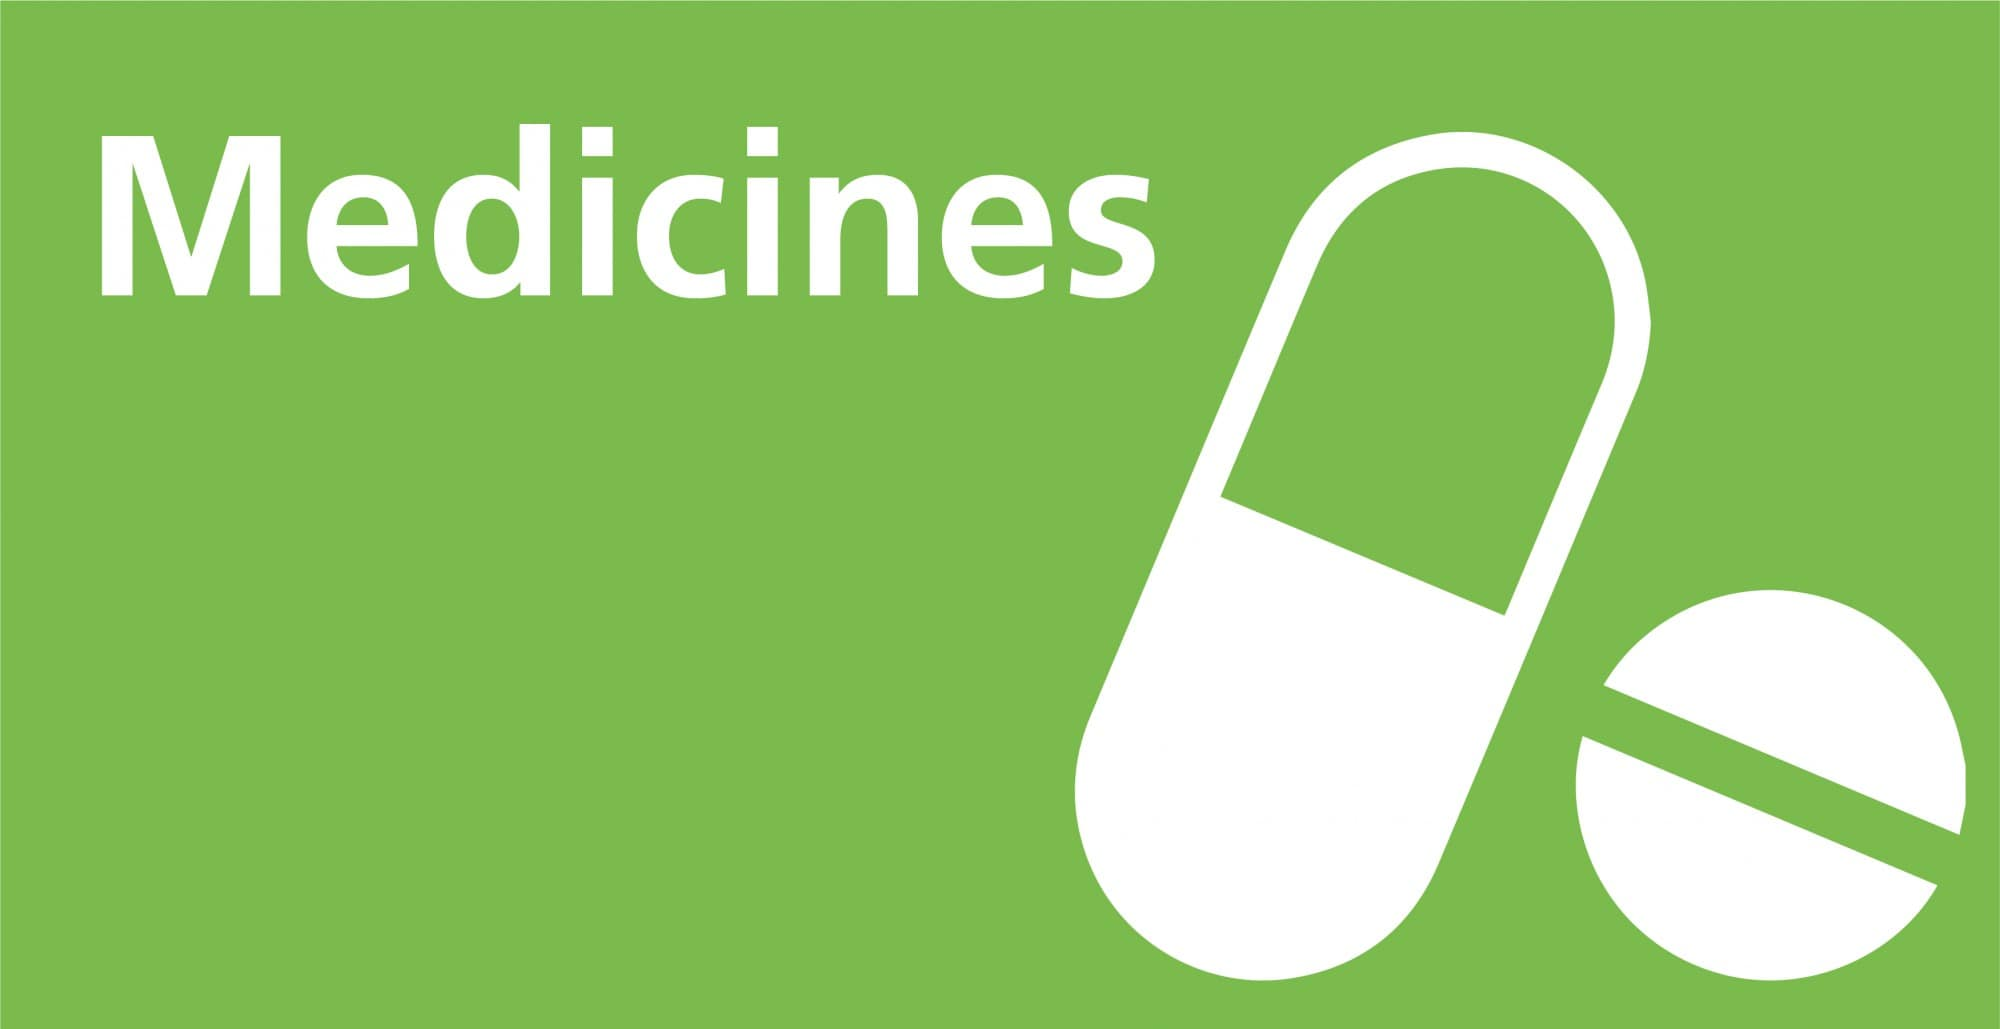 Medicines in mental health